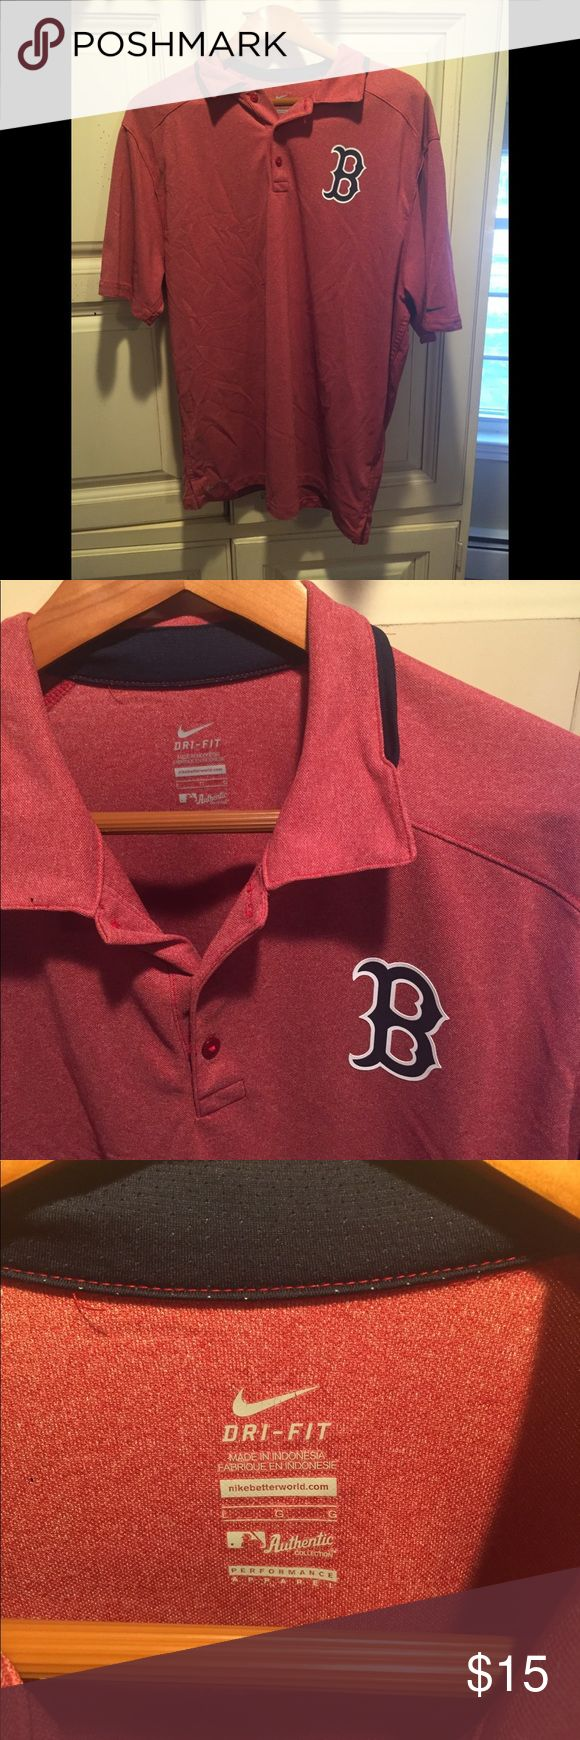 Boston Red Sox Dri-Fit Nike Polo Nike Boston Red Sox Polo Dri-Fit Size L. Authentic Collection Performance Apparel. If you have any questions please feel free to ask! Nike Shirts Polos